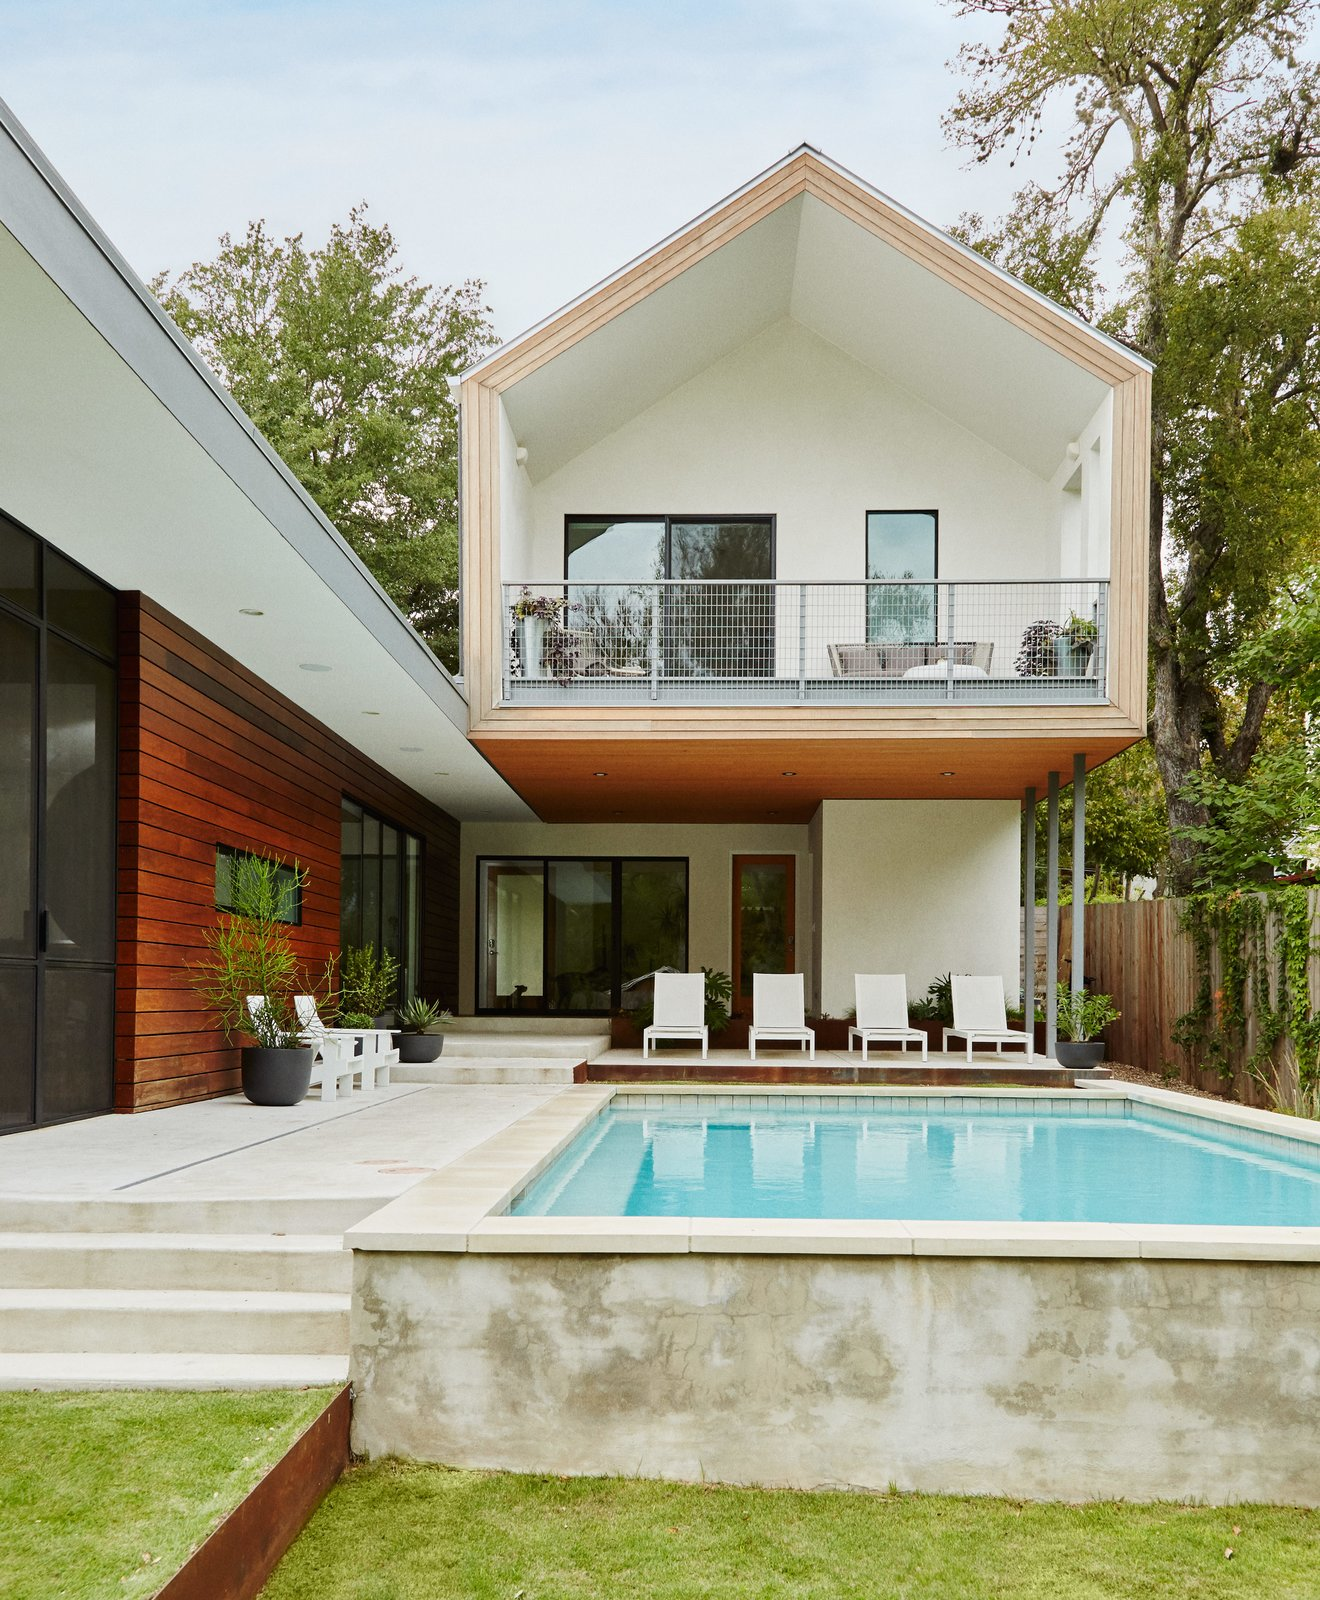 Architect Burton Baldridge's design for a house in Austin features a cantilevered upper volume with a gabled profile that was in part inspired by the work of Dutch architects MVRDV. It juts out over the patio, outfitted with chaise longues by Harbour Outdoor and Adirondack chairs by Loll. Tagged: Outdoor, Large Pools, Tubs, Shower, Concrete Pools, Tubs, Shower, Swimming Pools, Tubs, Shower, Large Patio, Porch, Deck, Grass, and Concrete Patio, Porch, Deck.  Photo 2 of 6 in Refreshed Take on the Gable Shines in Austin's Building Boom